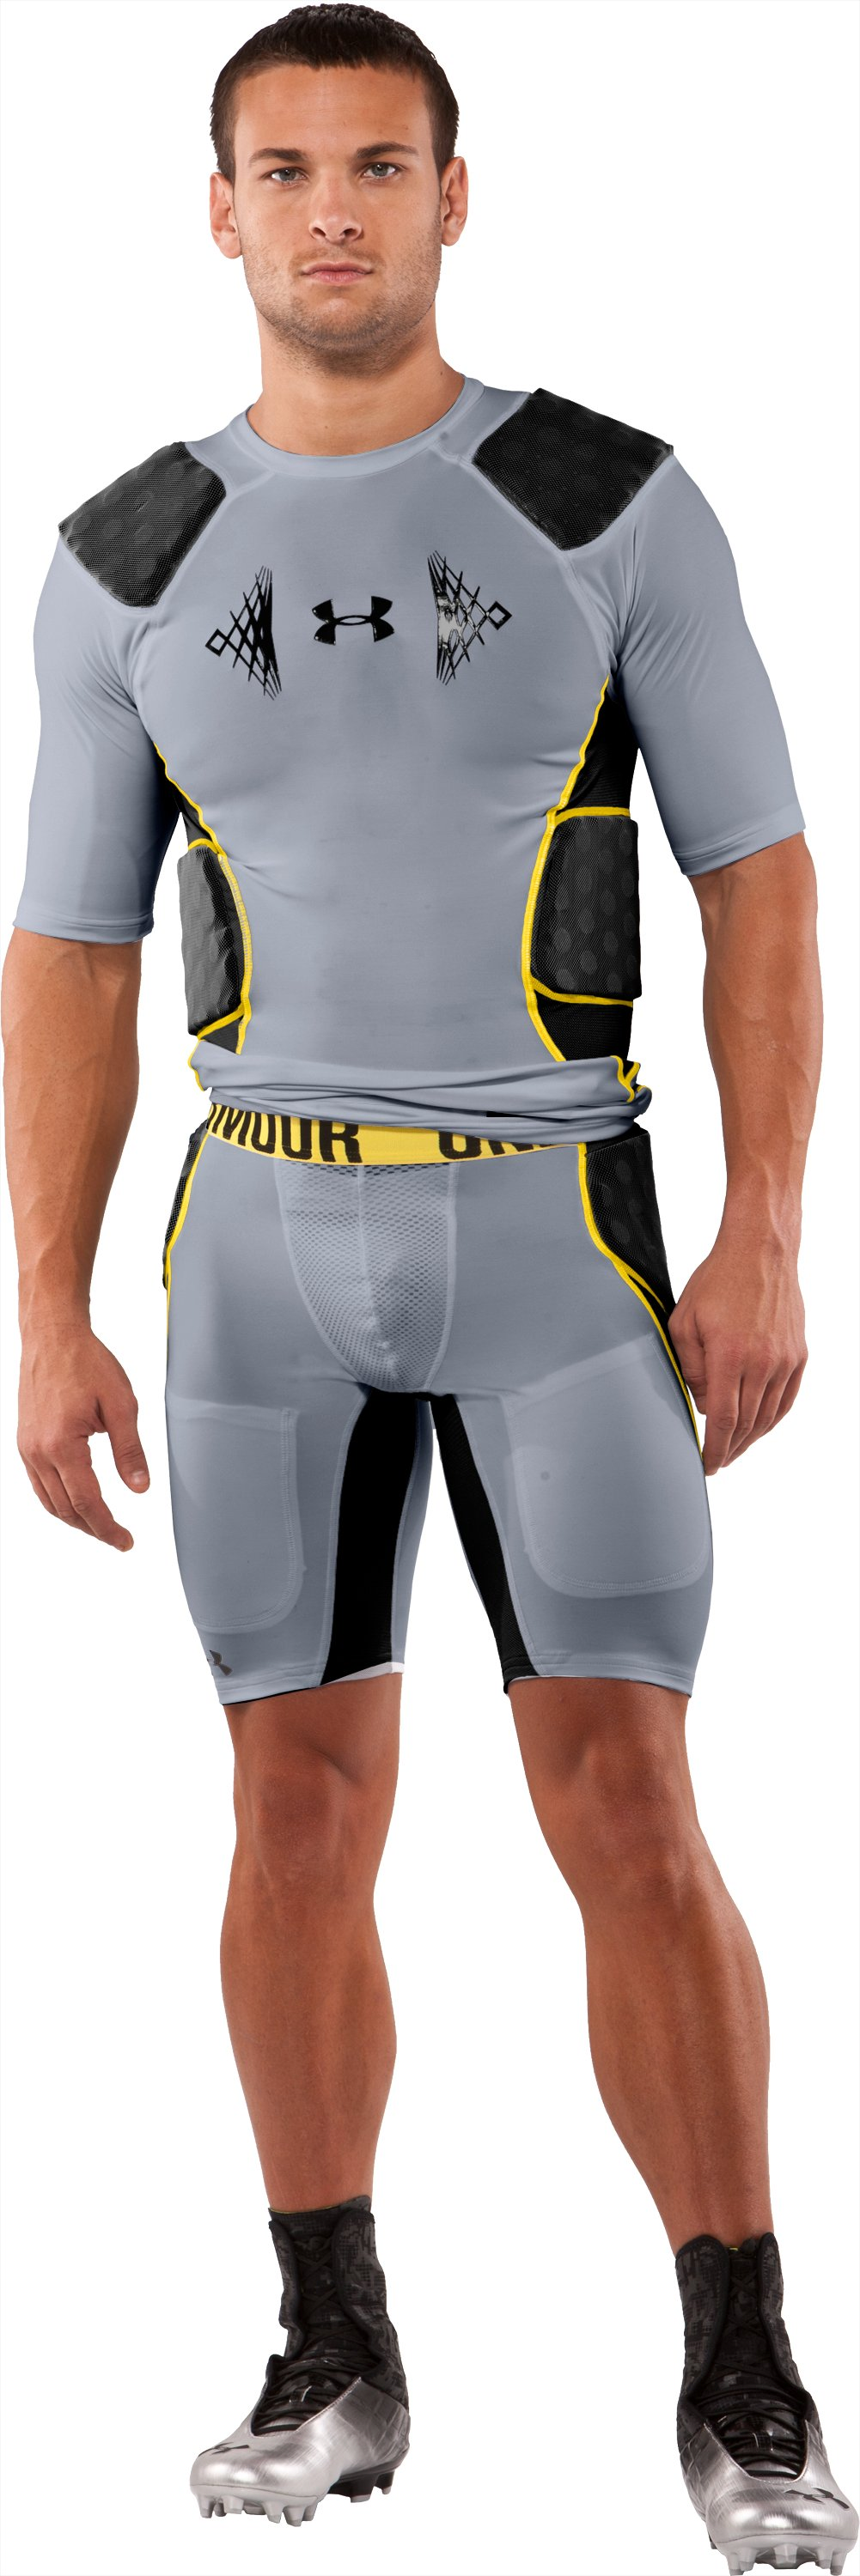 Men's MPZ® 3-Pad Armour® Girdle, Steel, Front